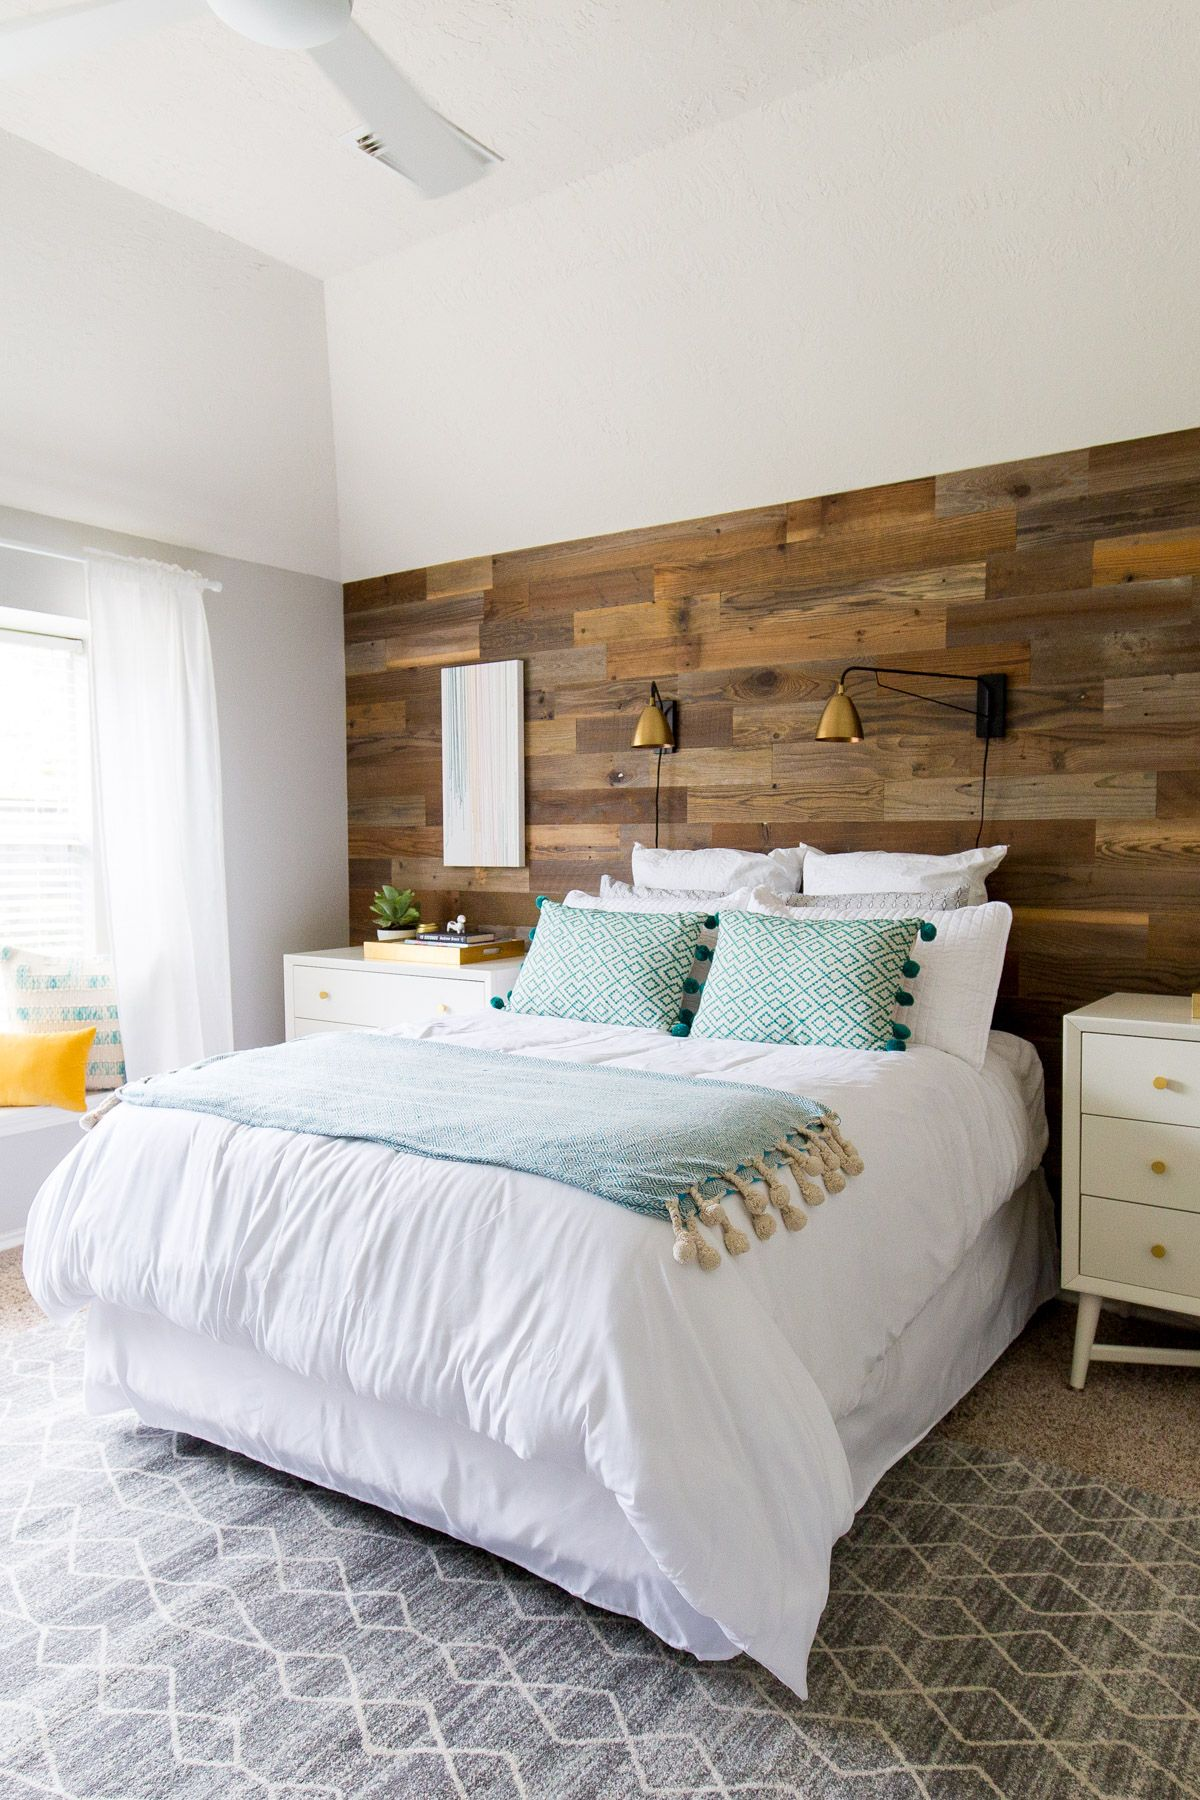 10 Best Master Bedroom Ideas - Designs and Decor for ... on Best Master Bedroom Ideas  id=81155